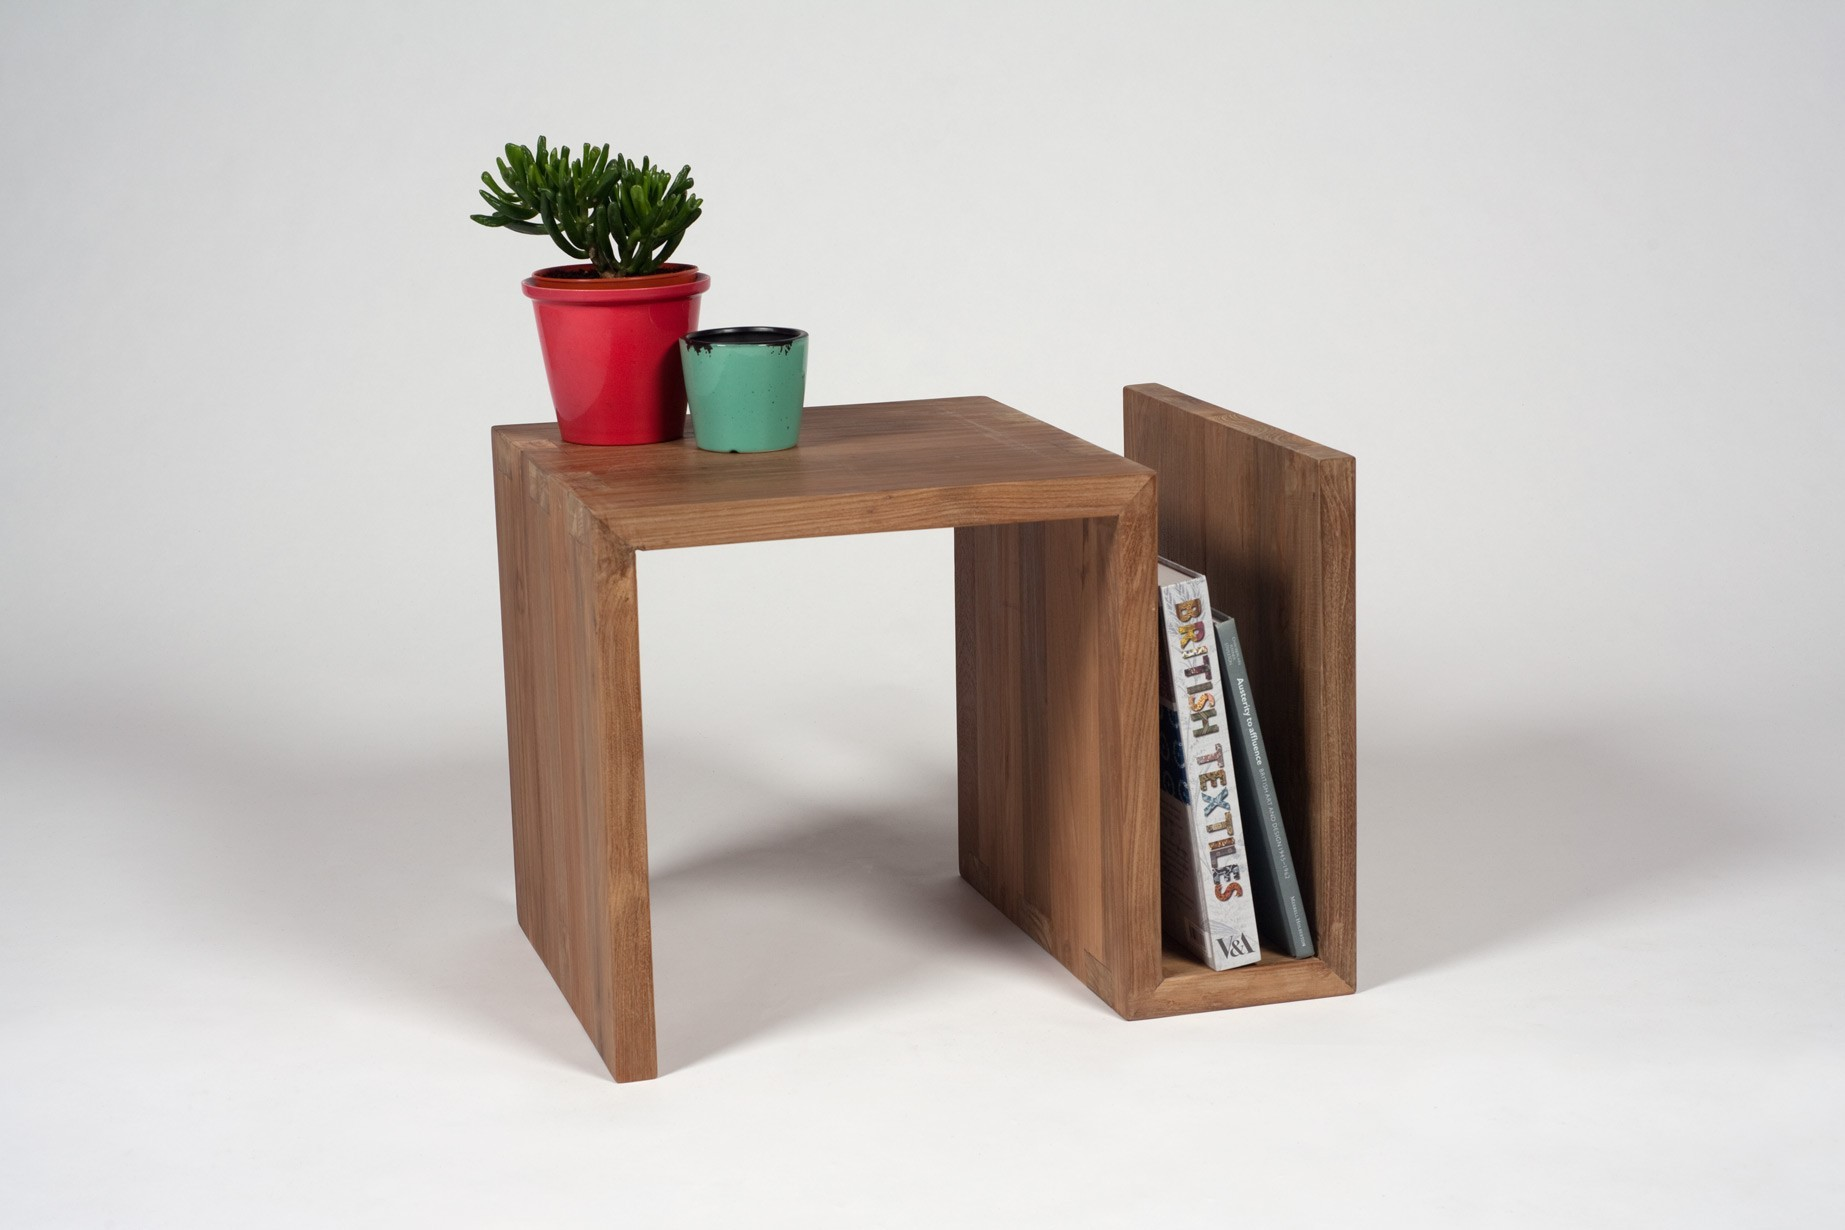 side tables office for drawing wooden diy bedside decor bedroom design designs tures furniture living ideas modern table room small half circle accent full size all weather patio